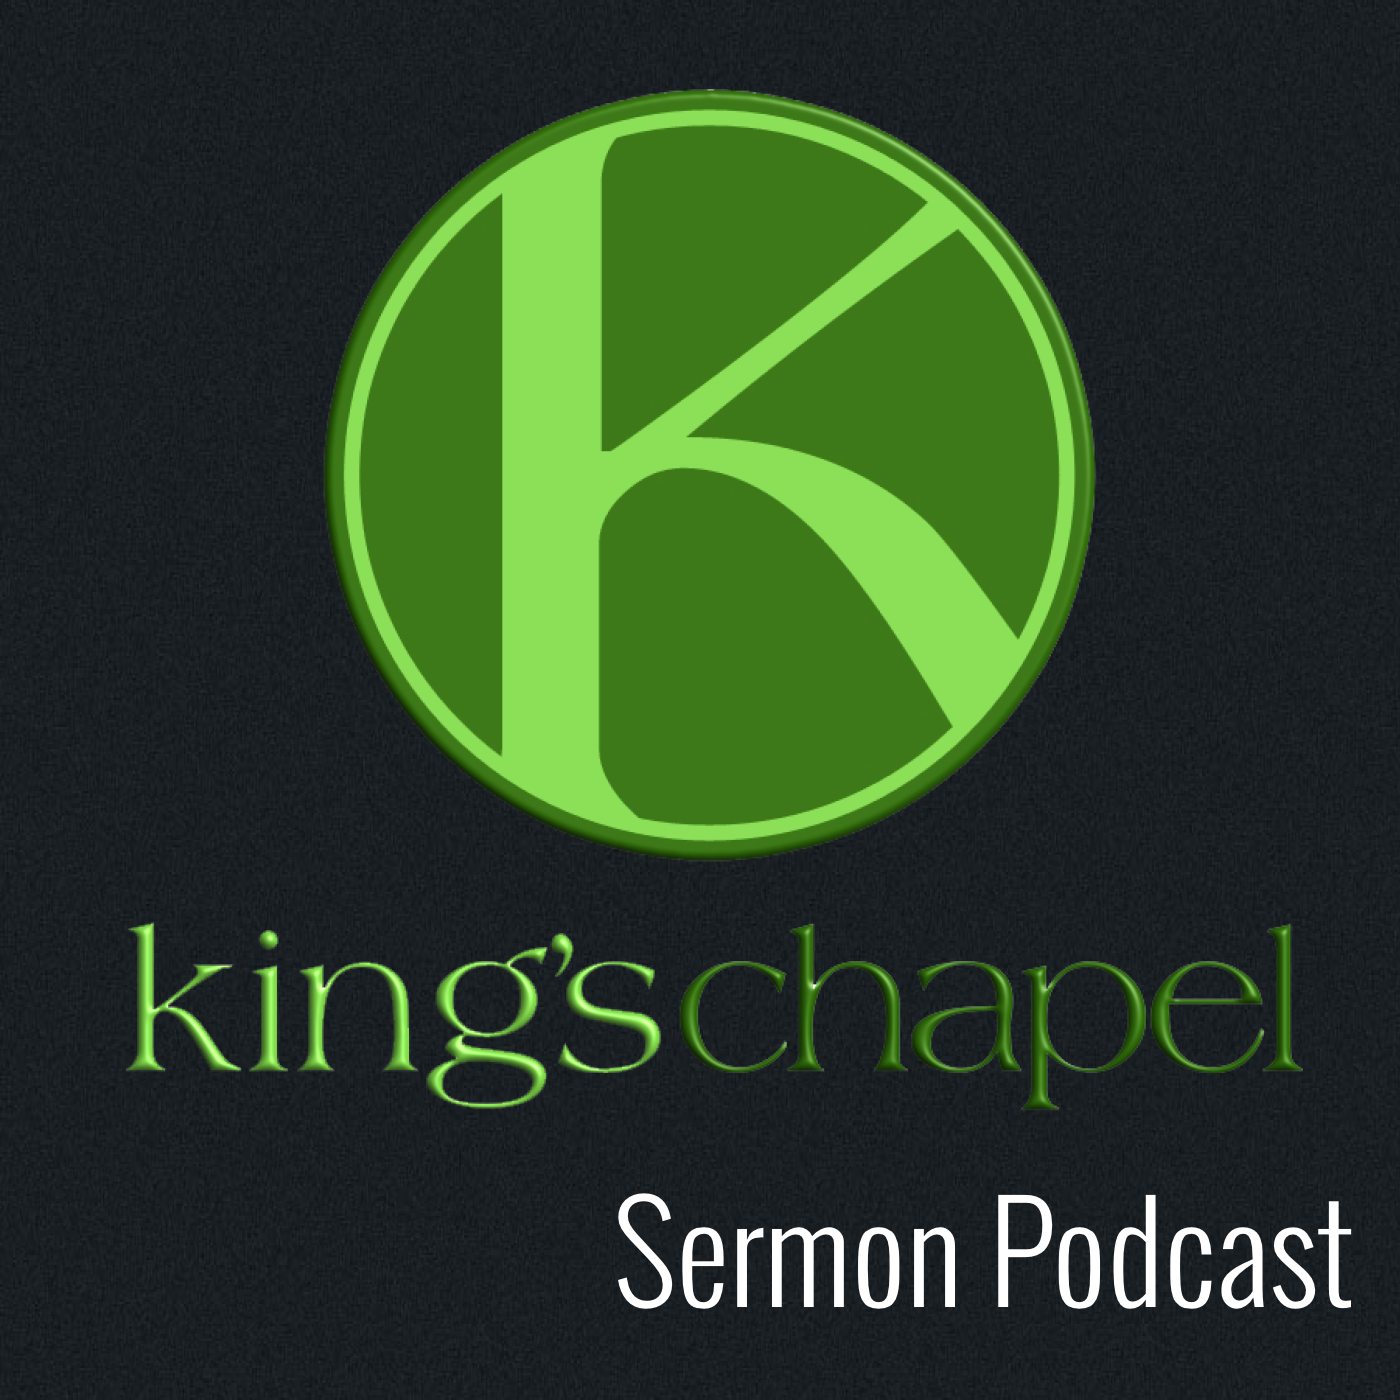 Kings Chapel Podcast